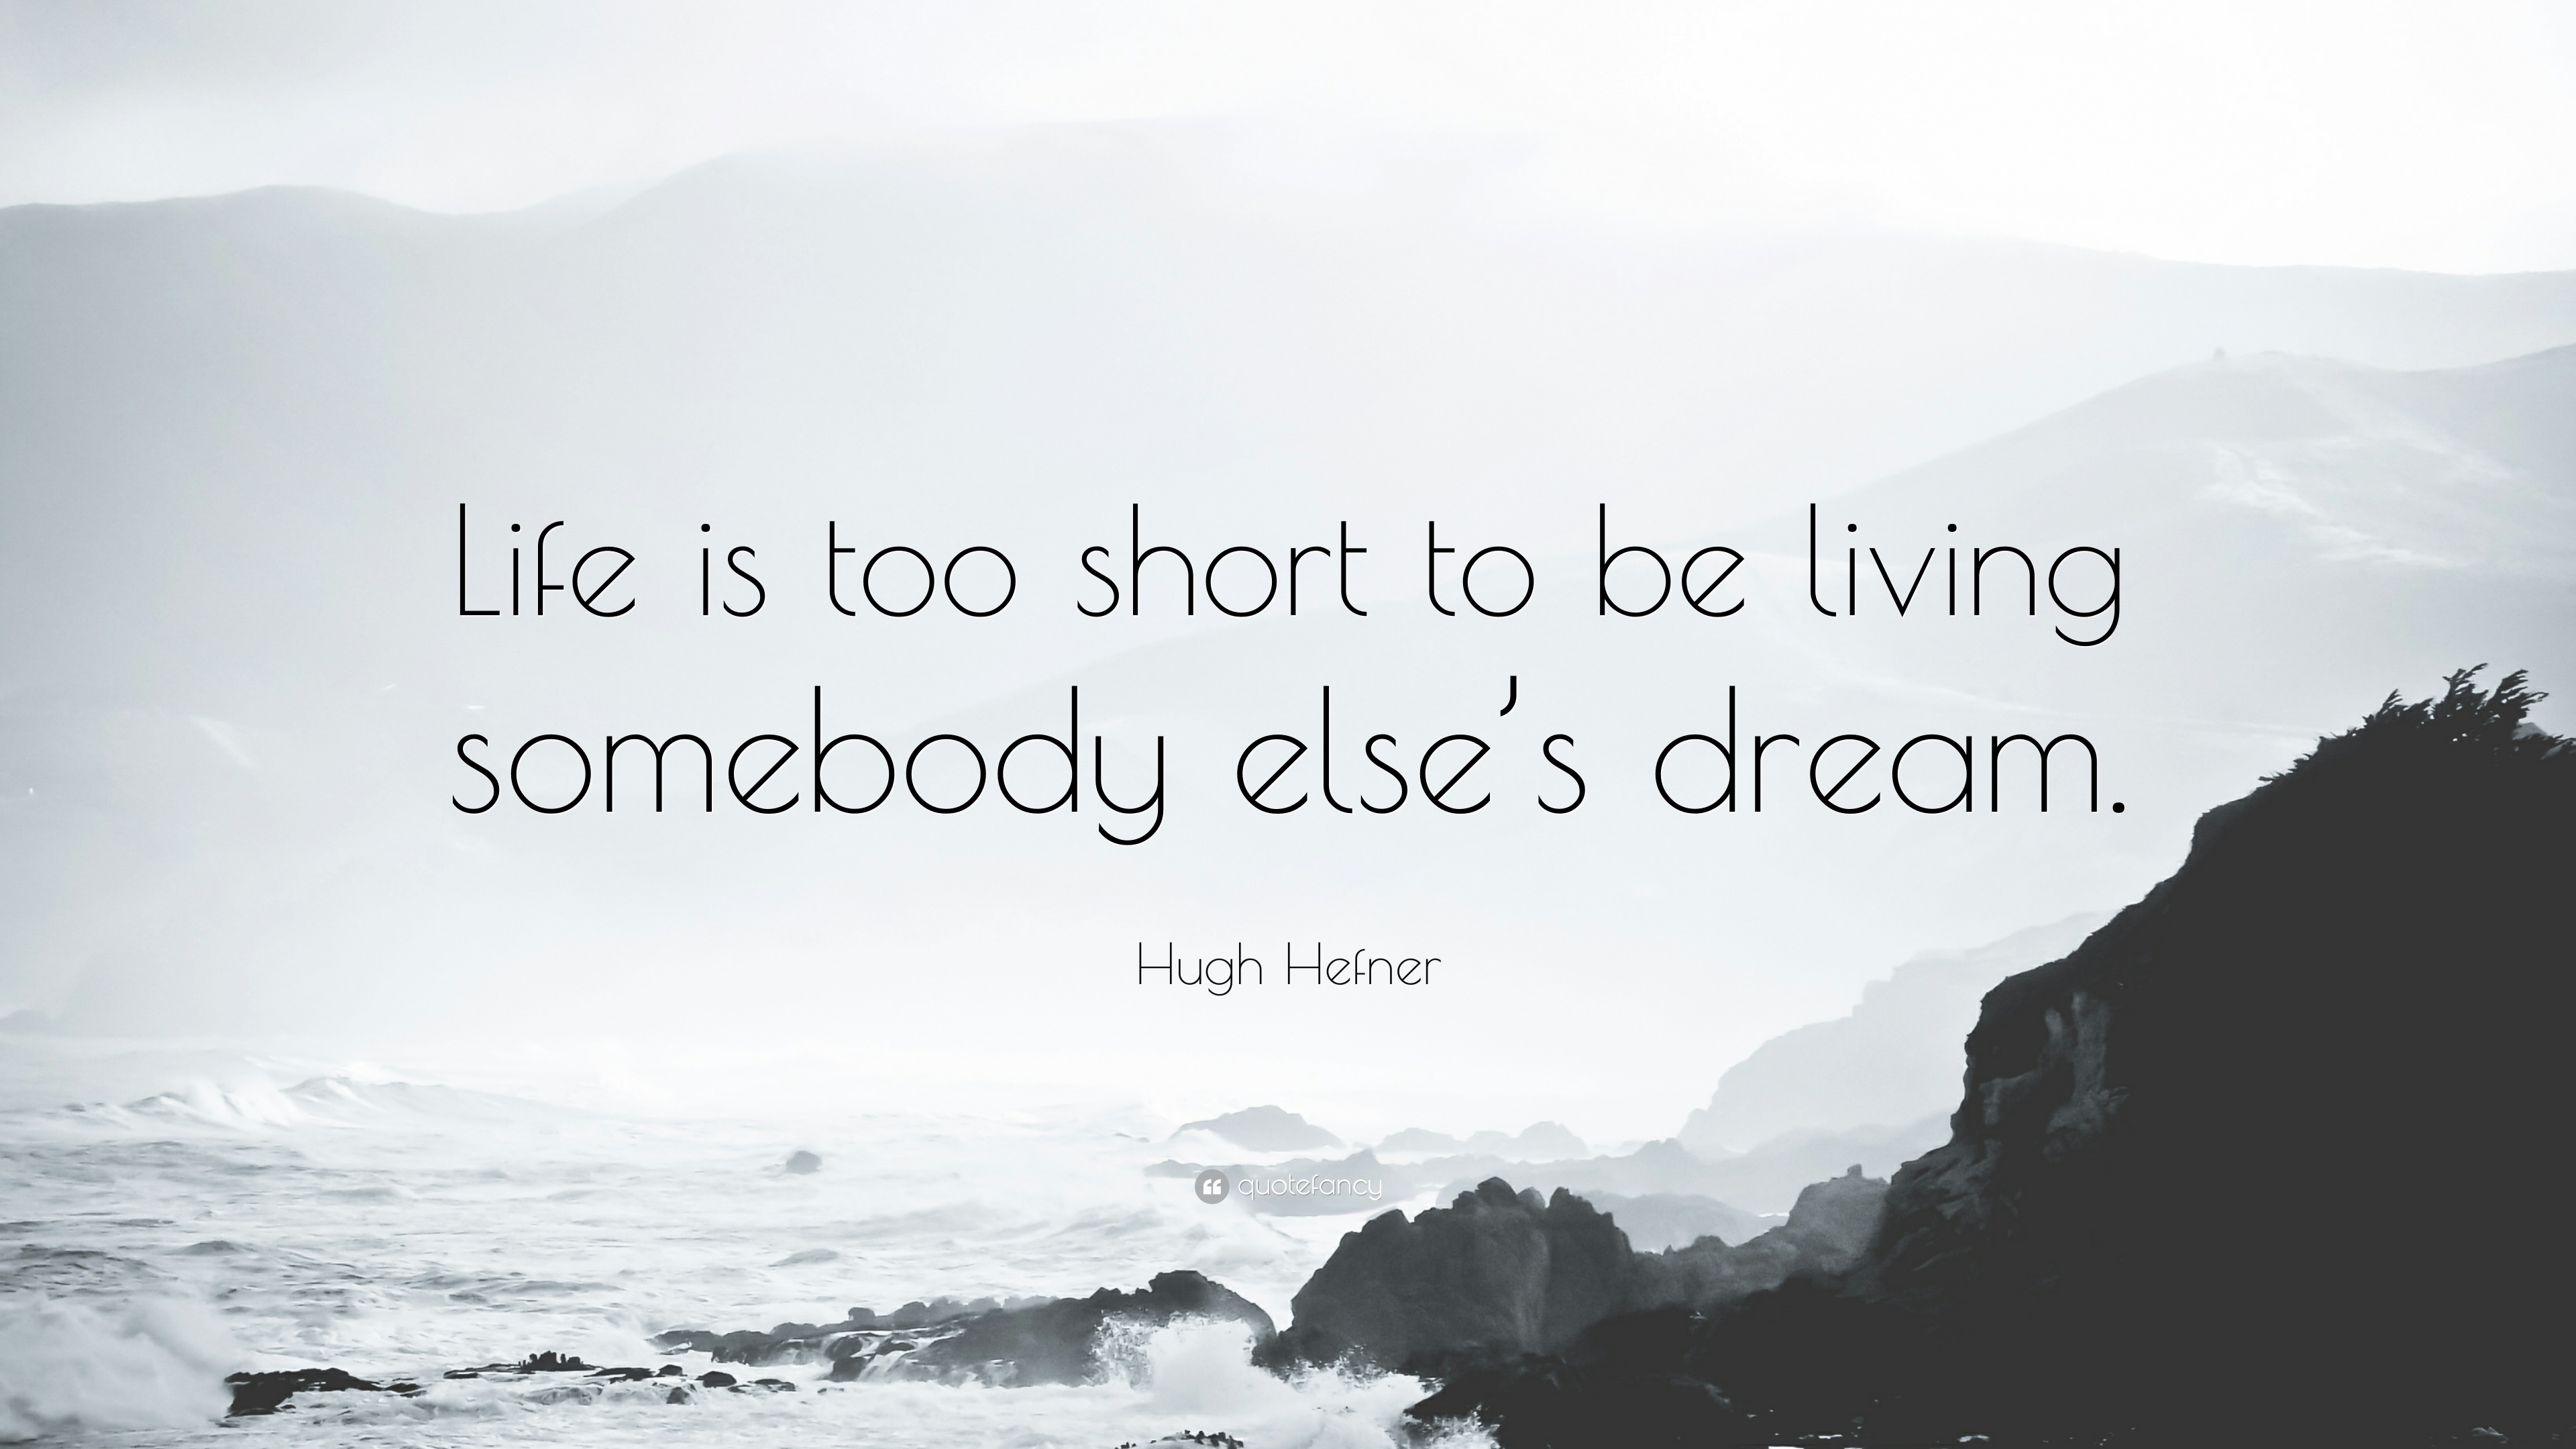 Hugh Hefner Quote Life Is Too Short To Be Living Somebody Elses